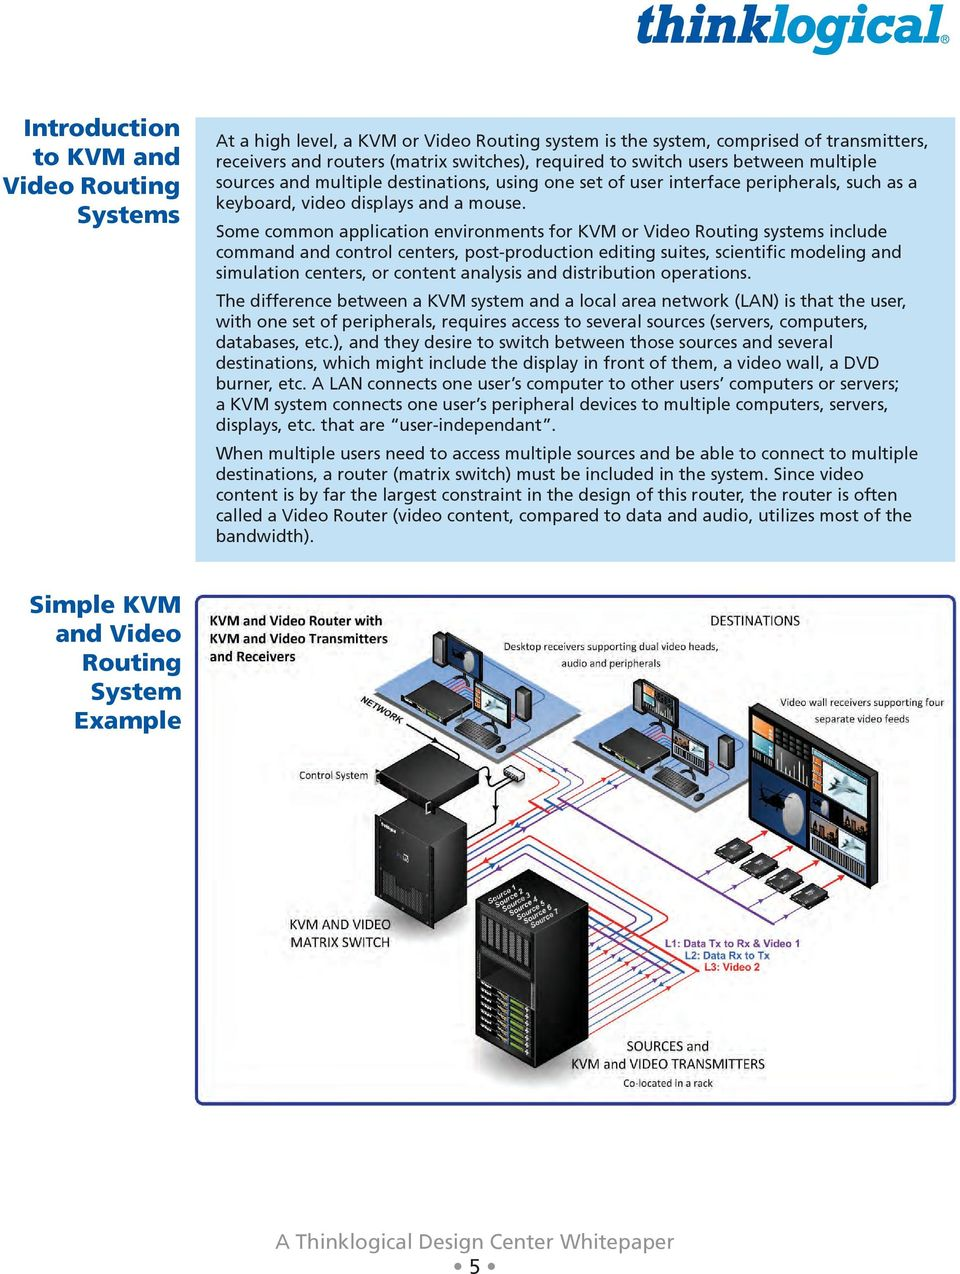 Some common application environments for KVM or Video Routing systems include command and control centers, post-production editing suites, scientific modeling and simulation centers, or content